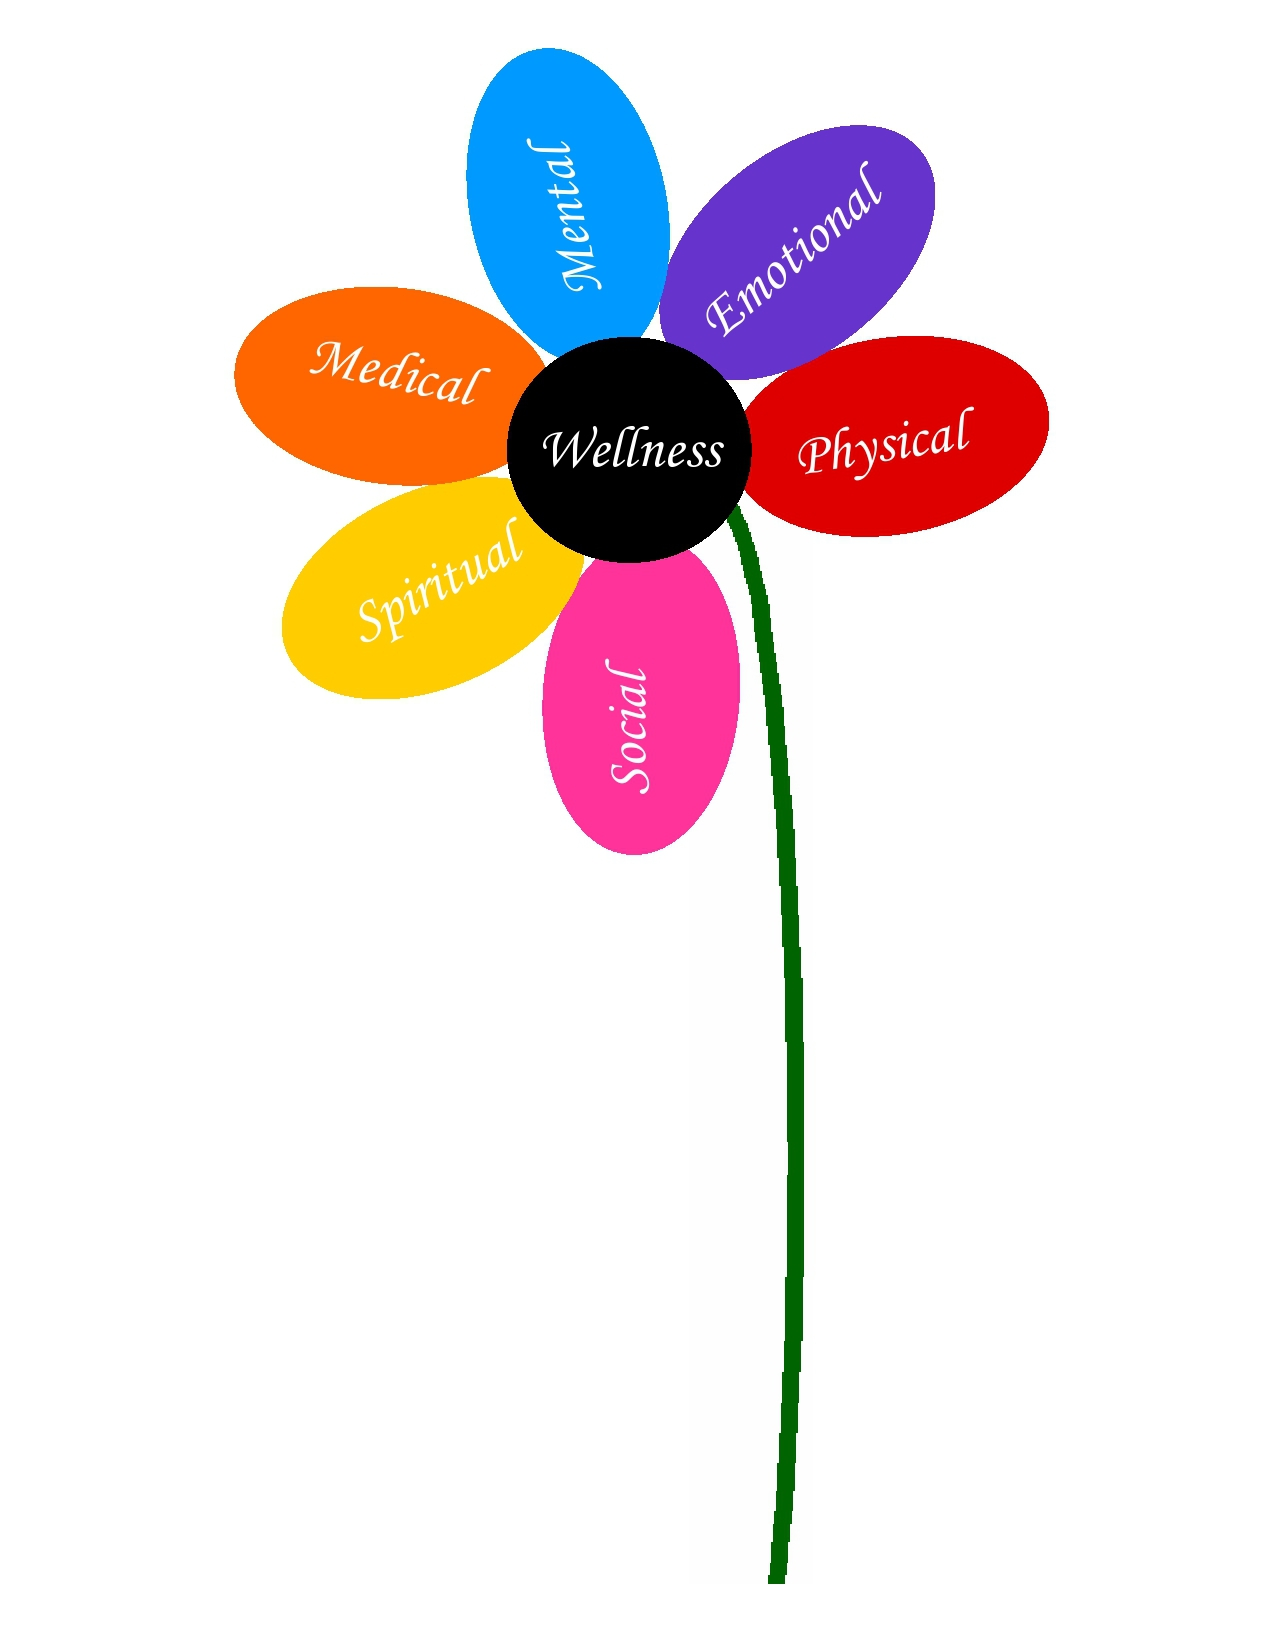 Six Out Of Ten Dimensions Of Wellness